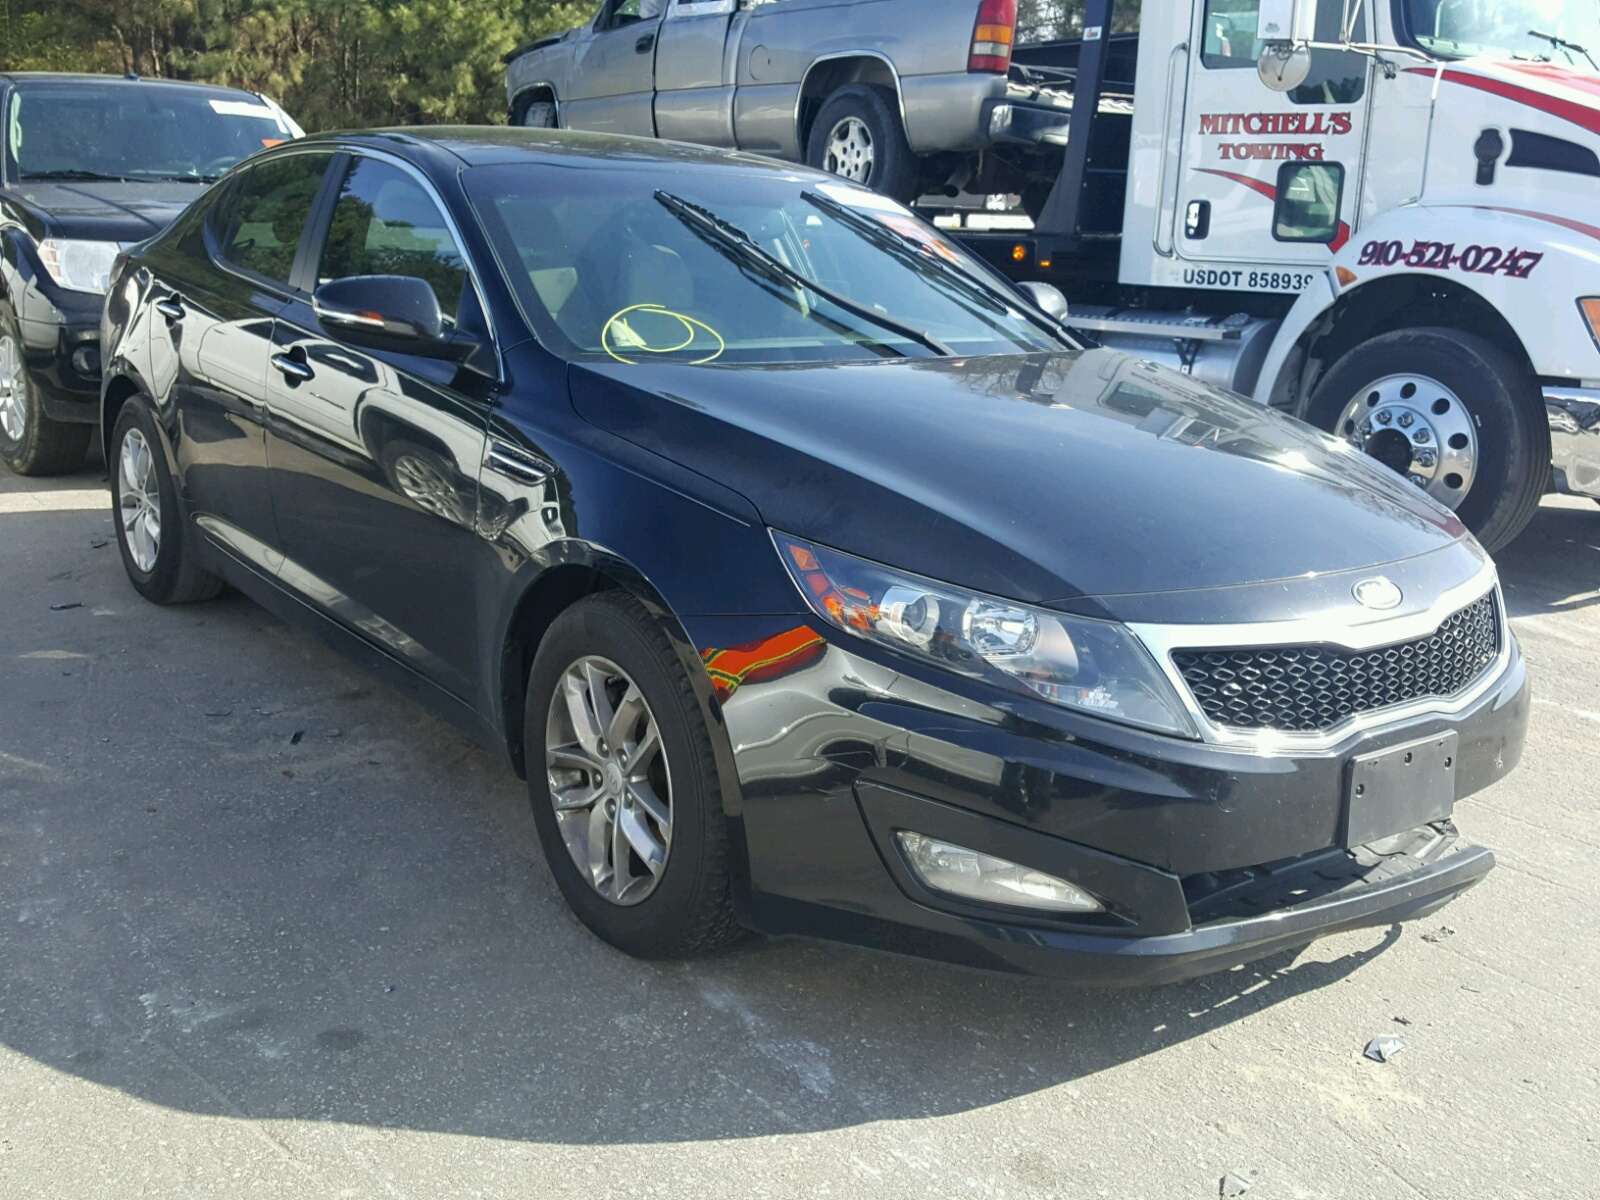 details at kia in ca inventory angeles optima sales lx sale express for los